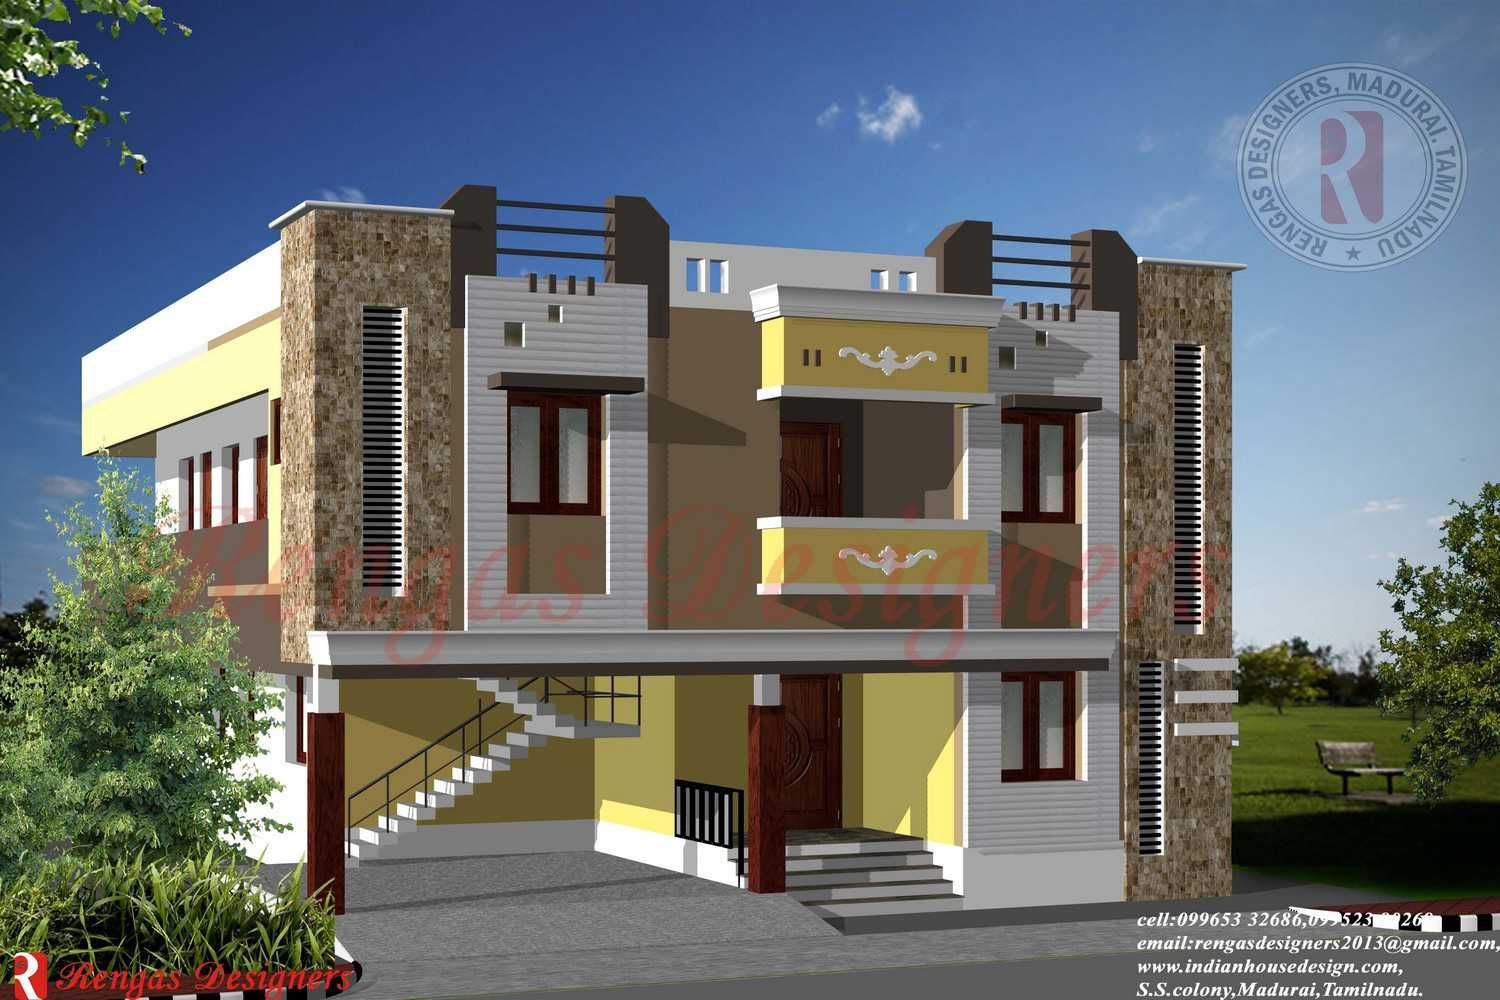 Parapet wall designs google search residence for Small indian house plans modern